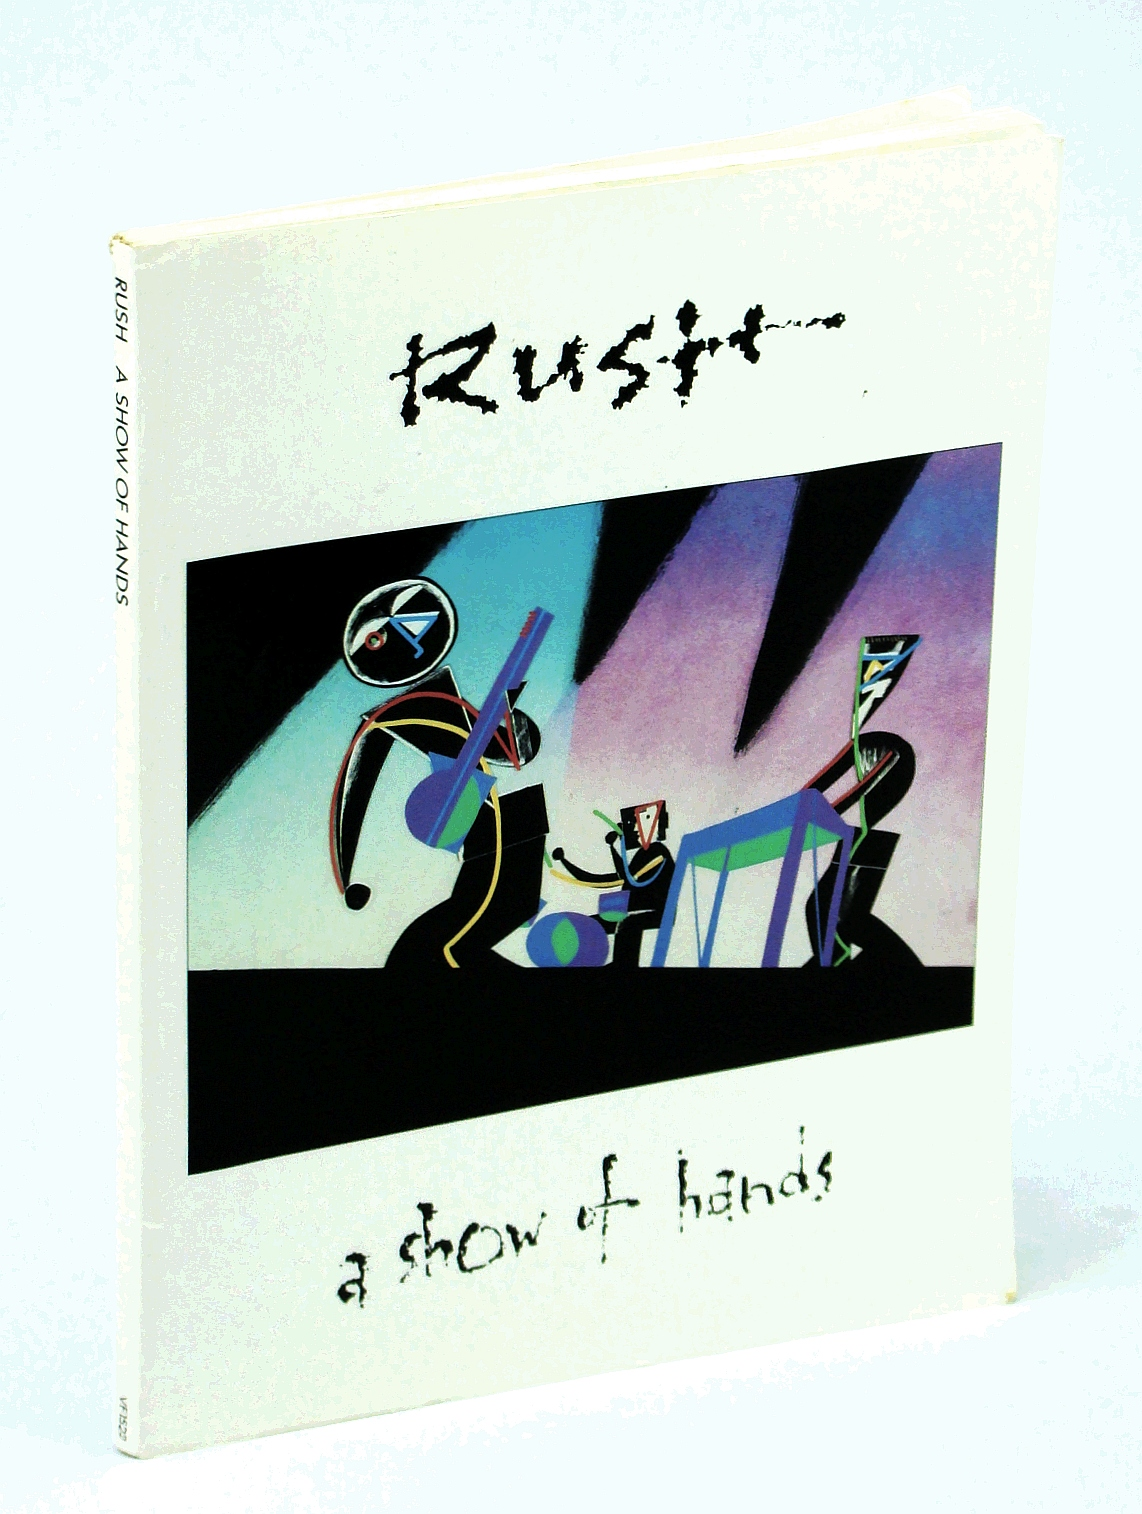 Image for Rush a show of hands (VF1522)